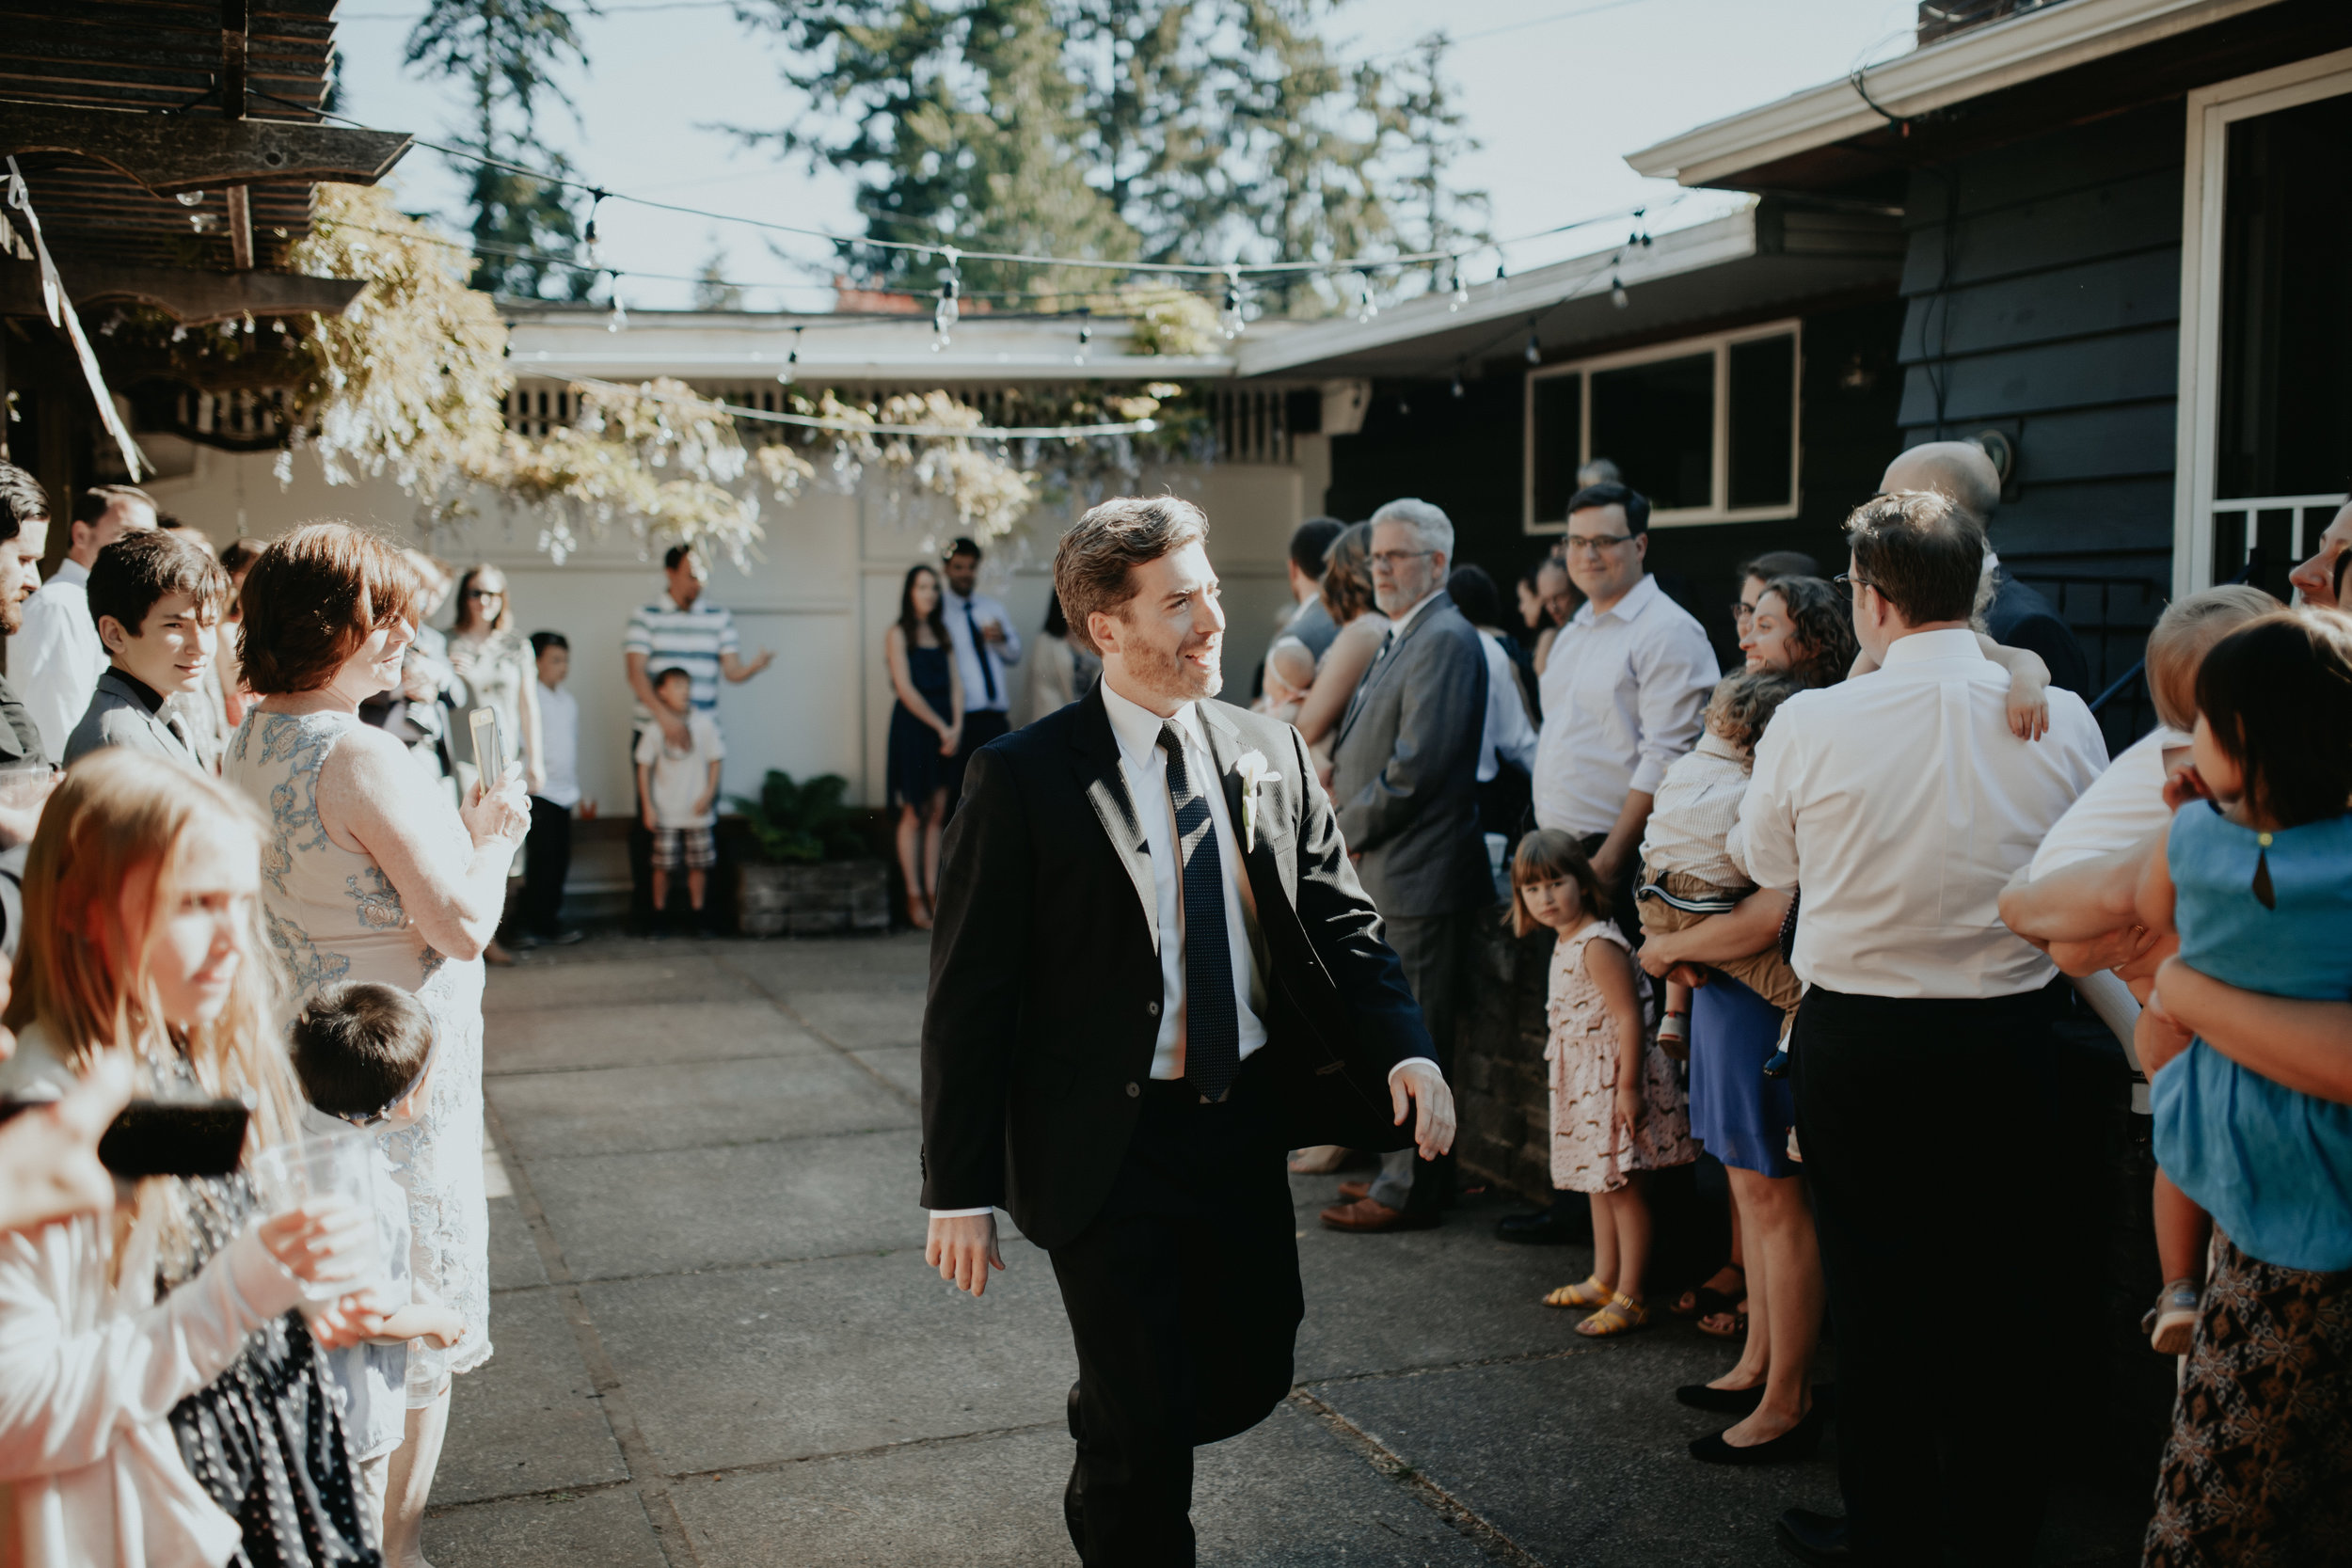 krissie francis photo | seattle wedding photographer | top wedding photographers in seattle | washington wedding photographer | elopement | small wedding | intimate wedding | wedding trends | olympia wa wedding photographer | backyard wedding